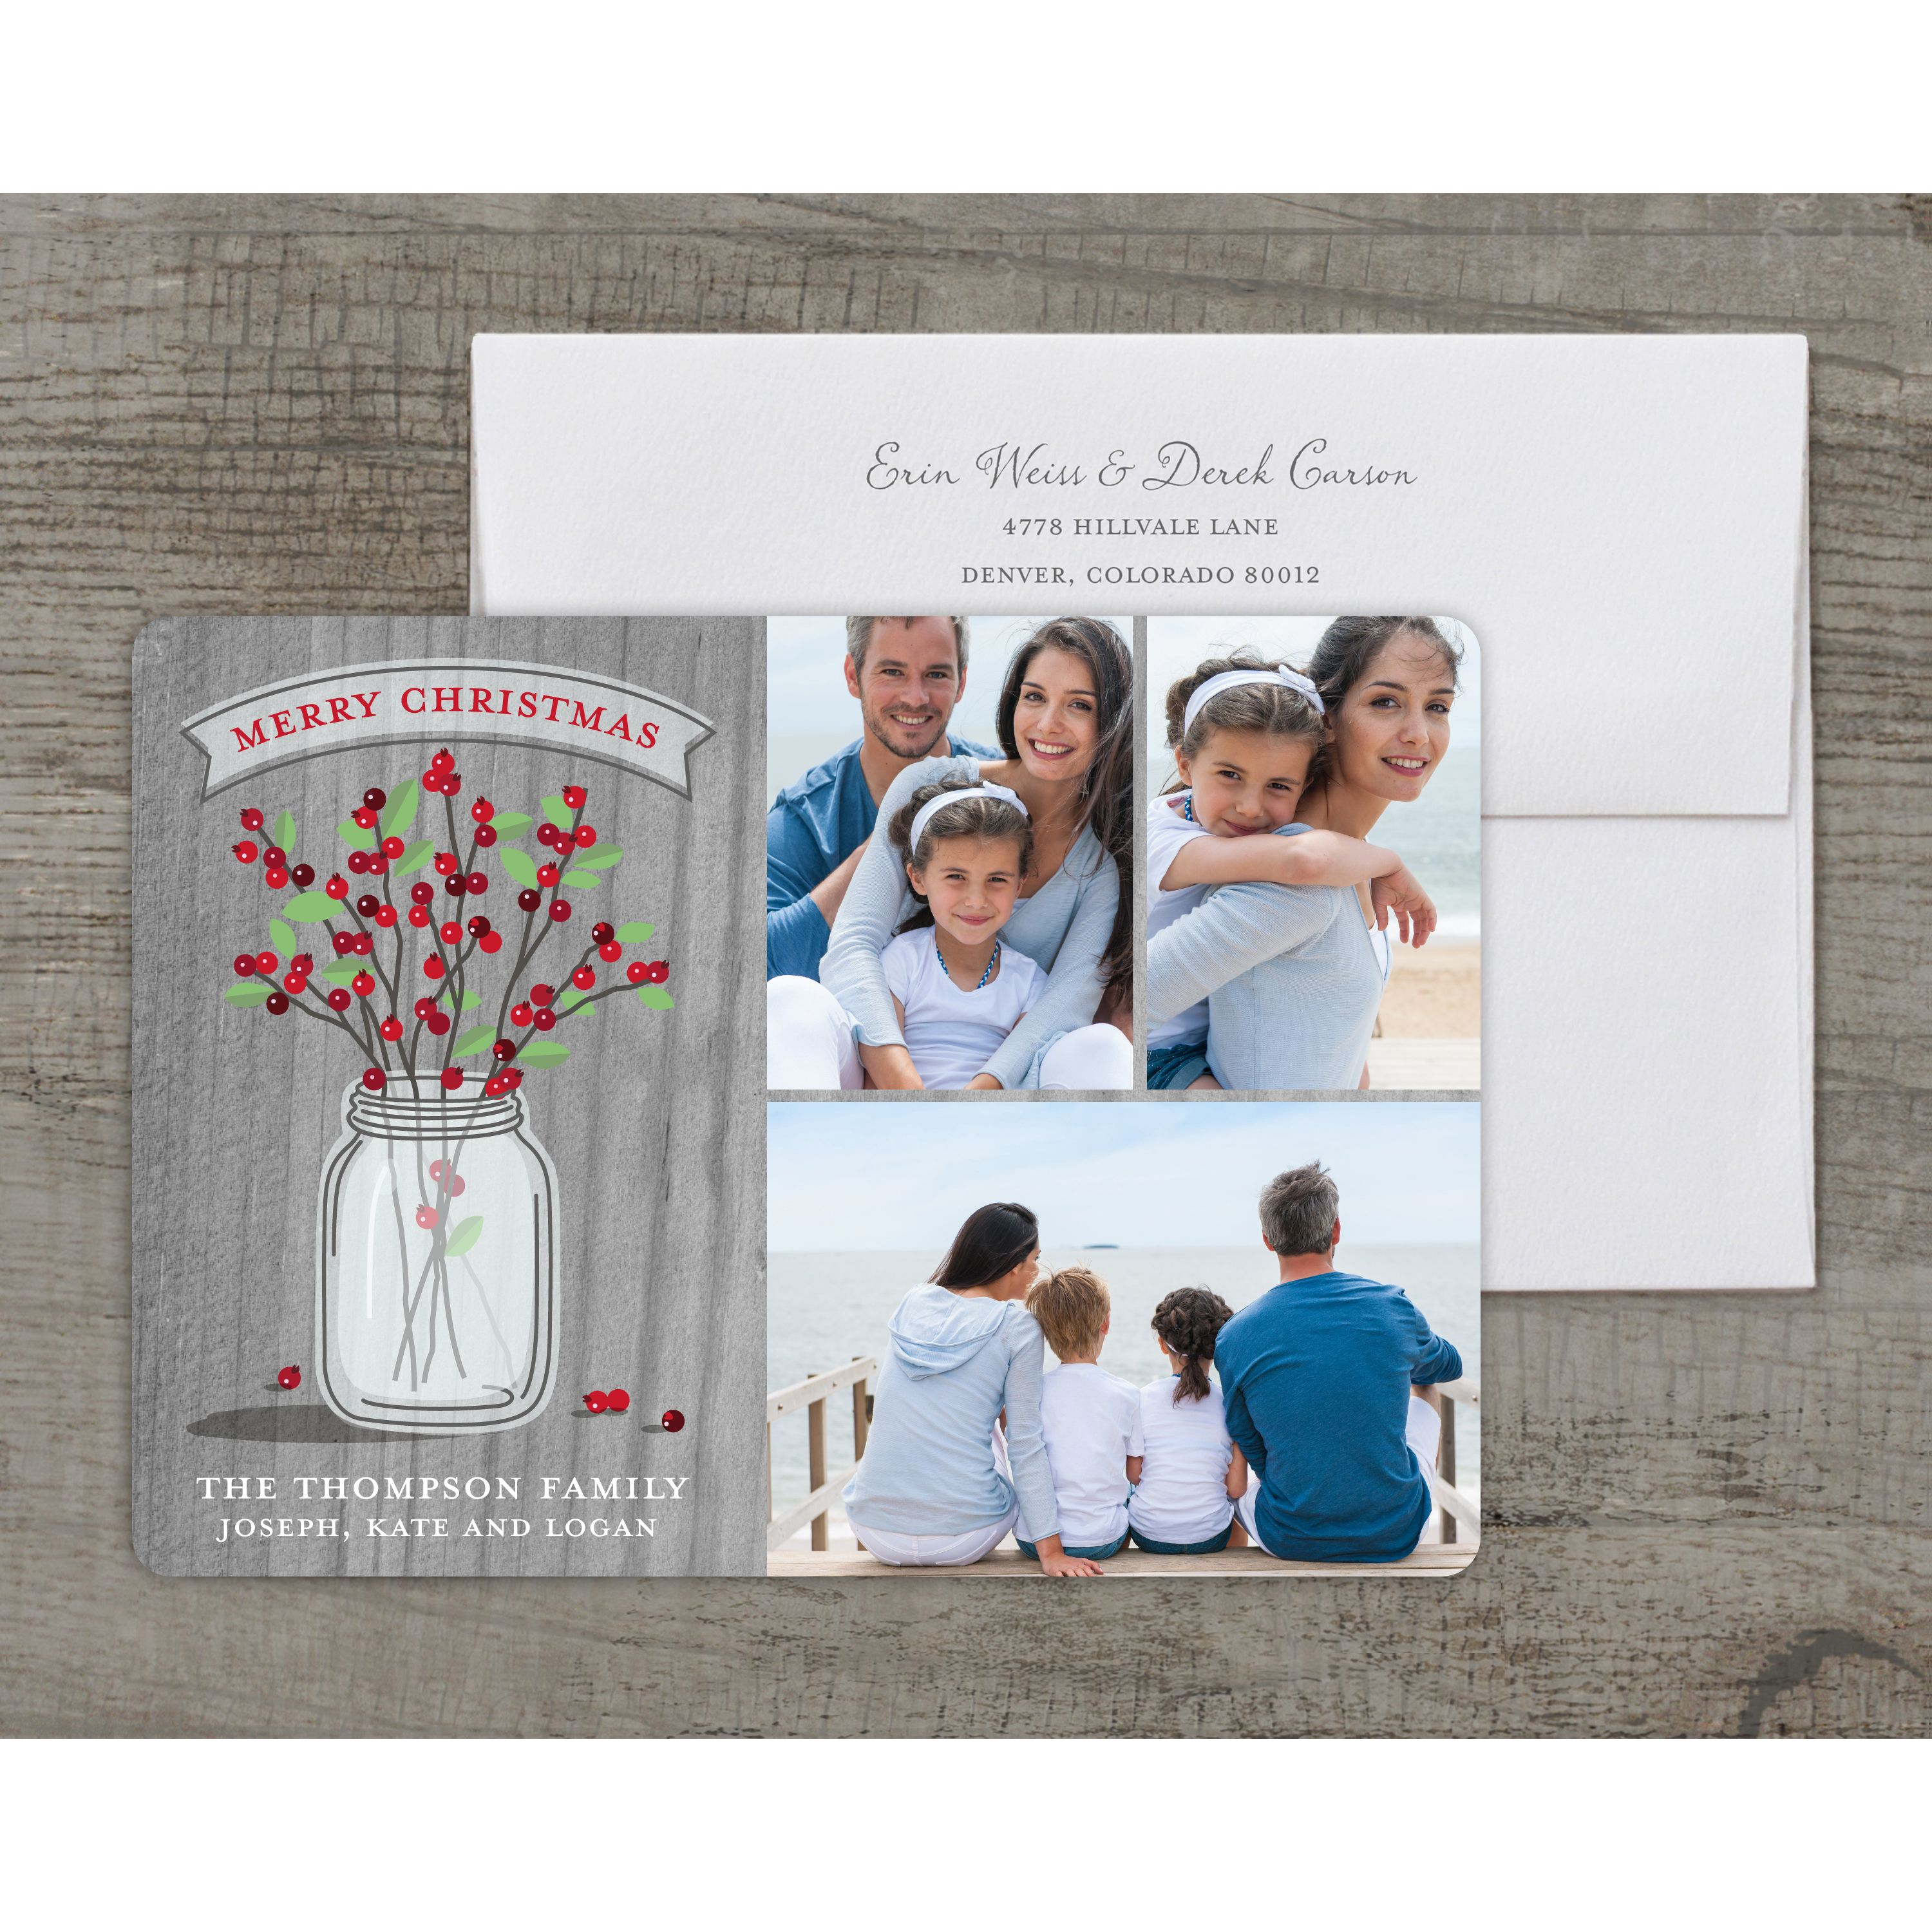 Rustic Berries - Deluxe 5x7 Personalized Holiday Christmas Card